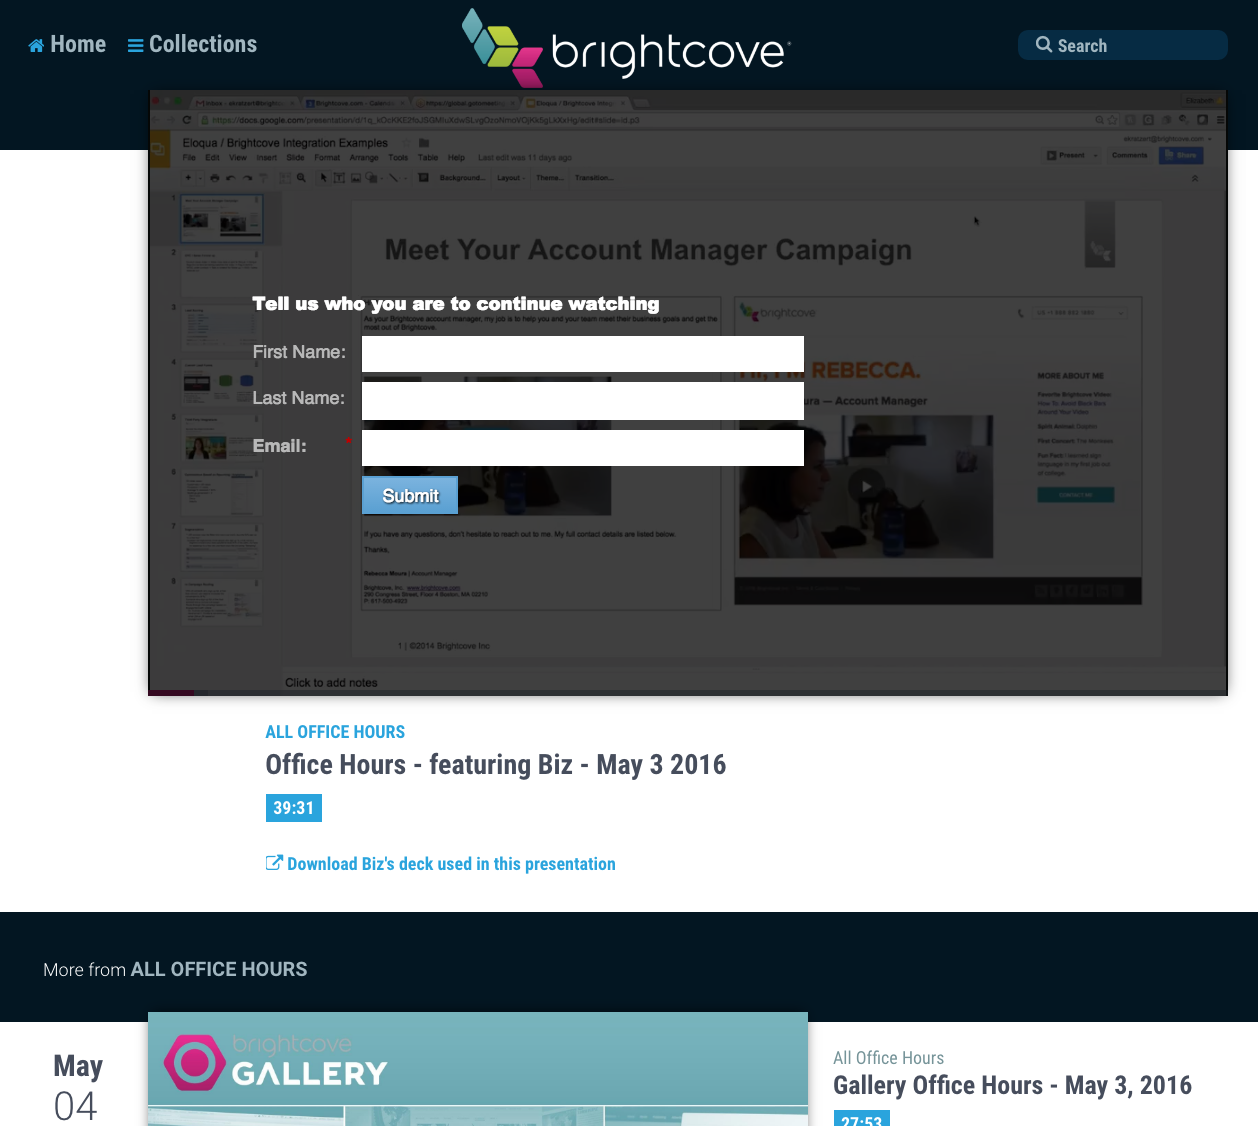 Brightcove Audience Video Lead Form Example